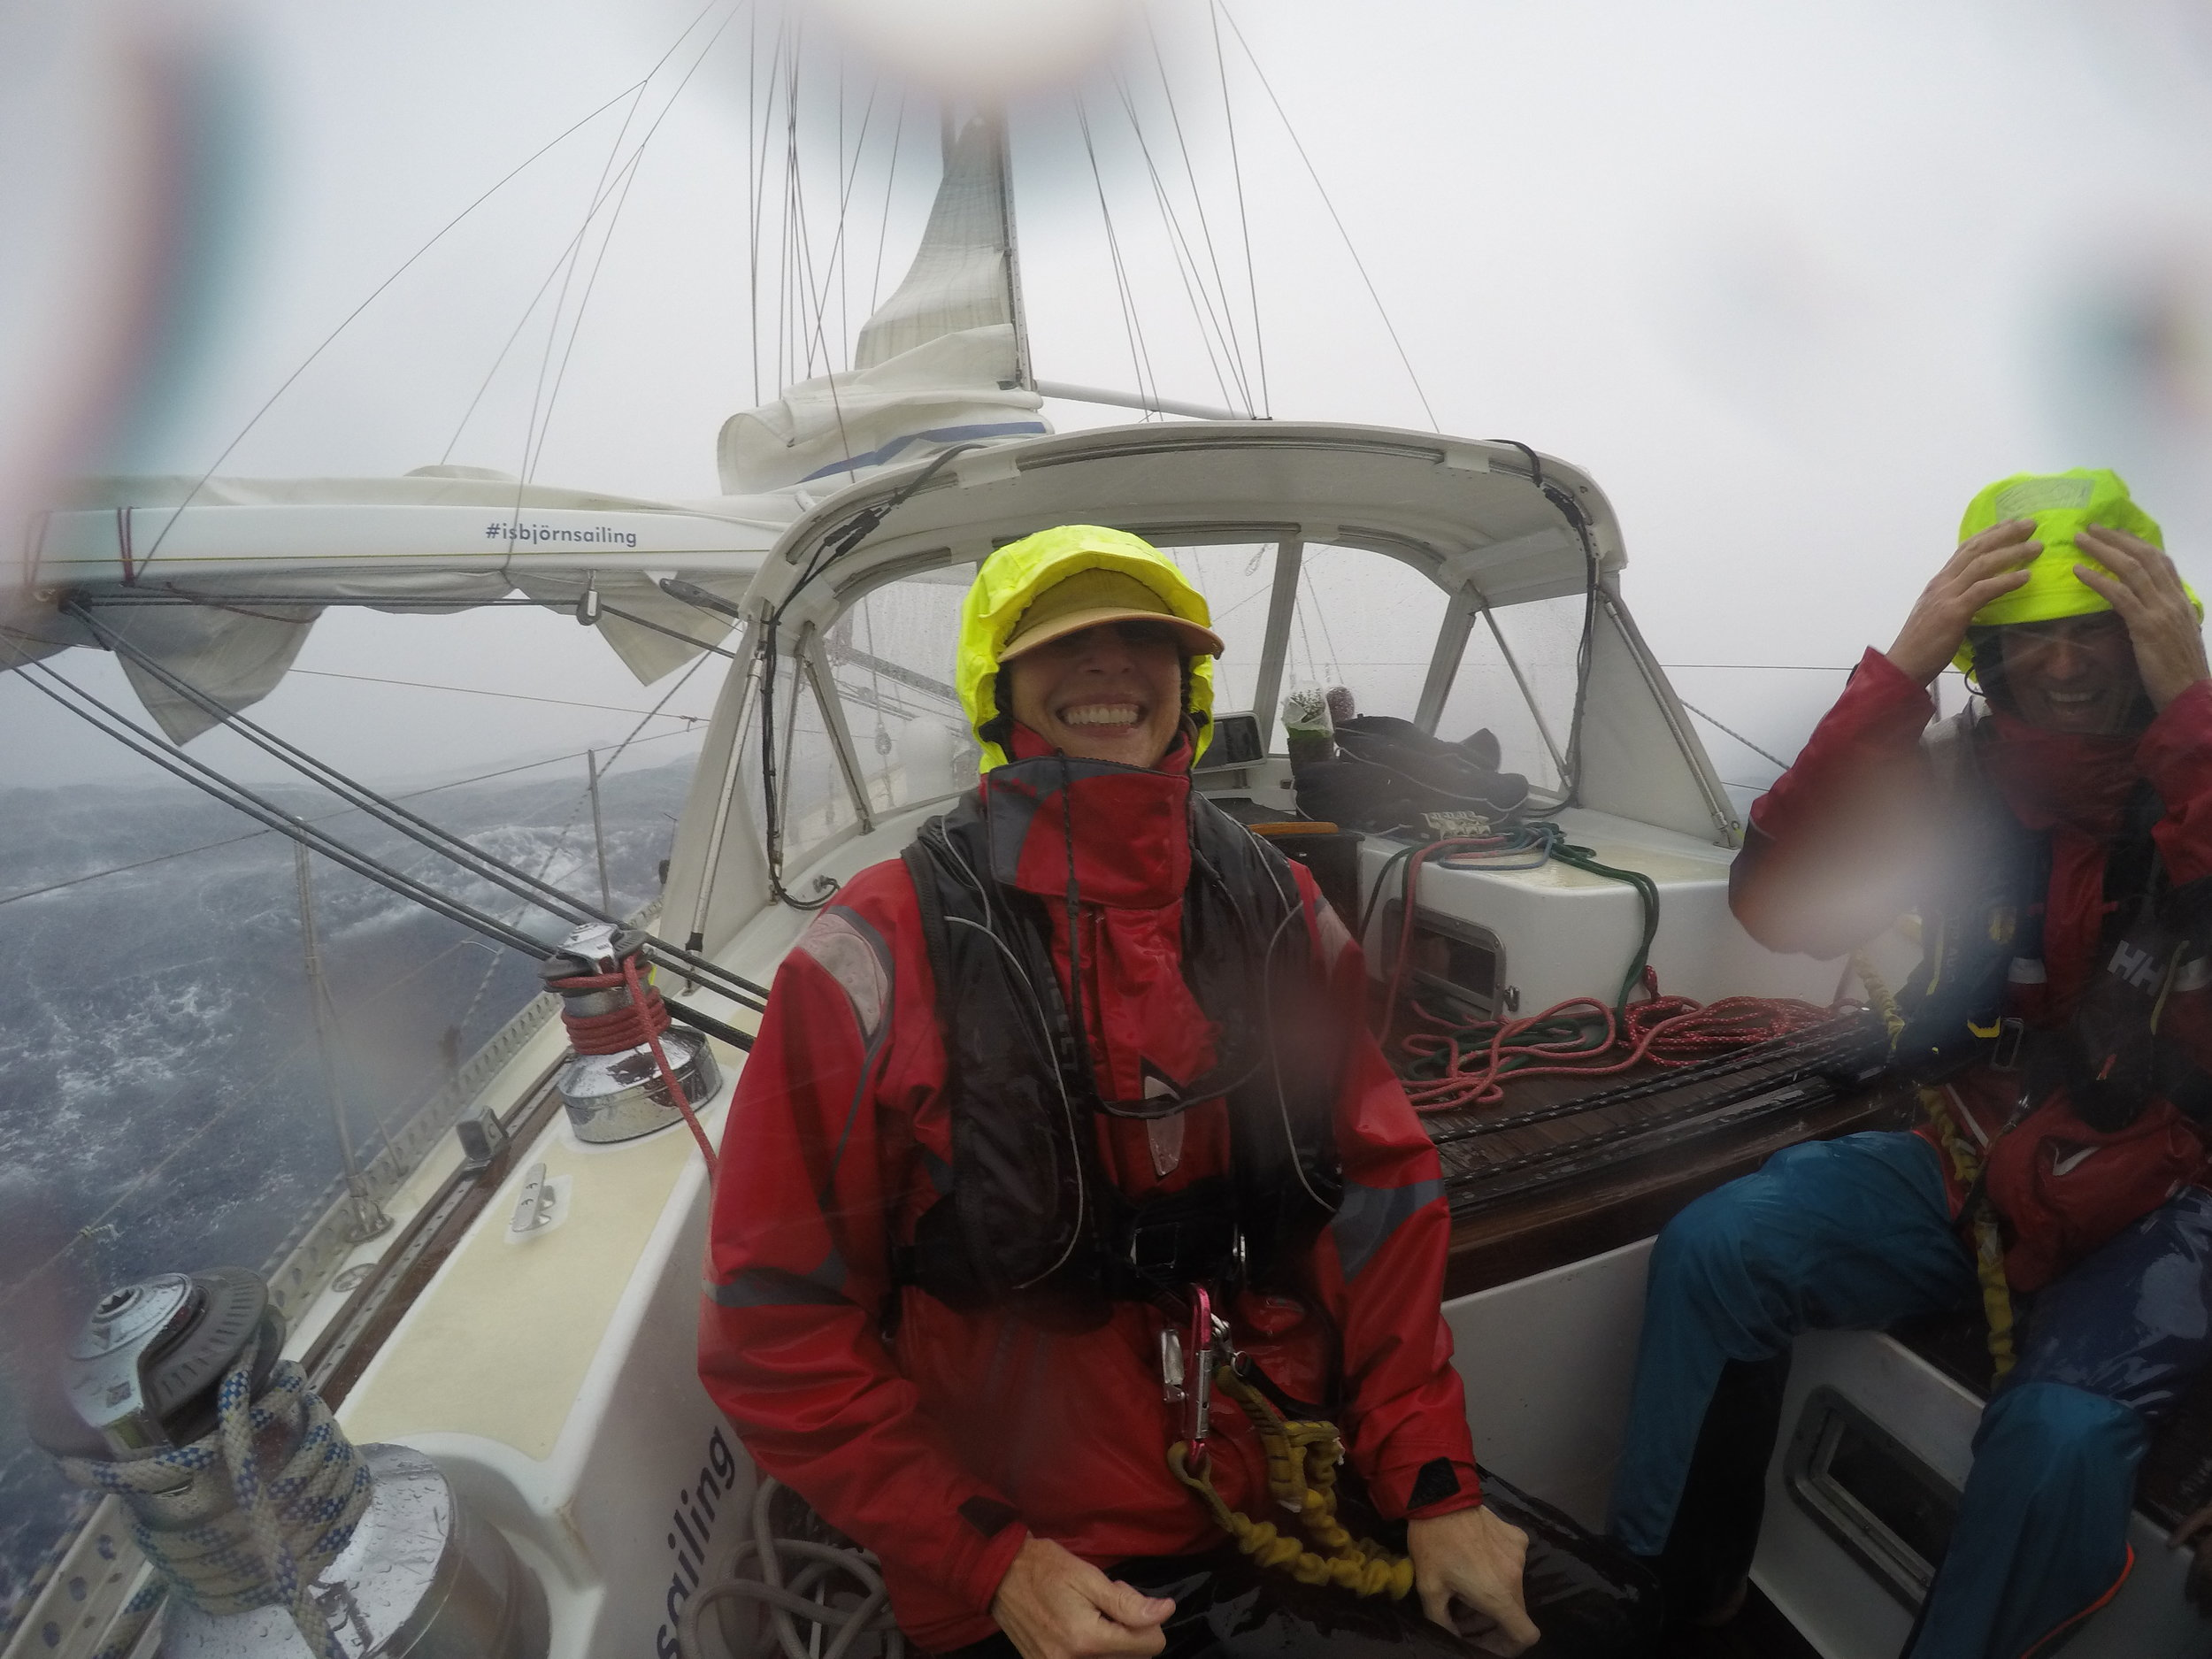 Just after the height of the little storm. The rain really does flatten out the sea, it was raining that hard. Blowing about 35 knots in this photo, (nervous) smiles all around!